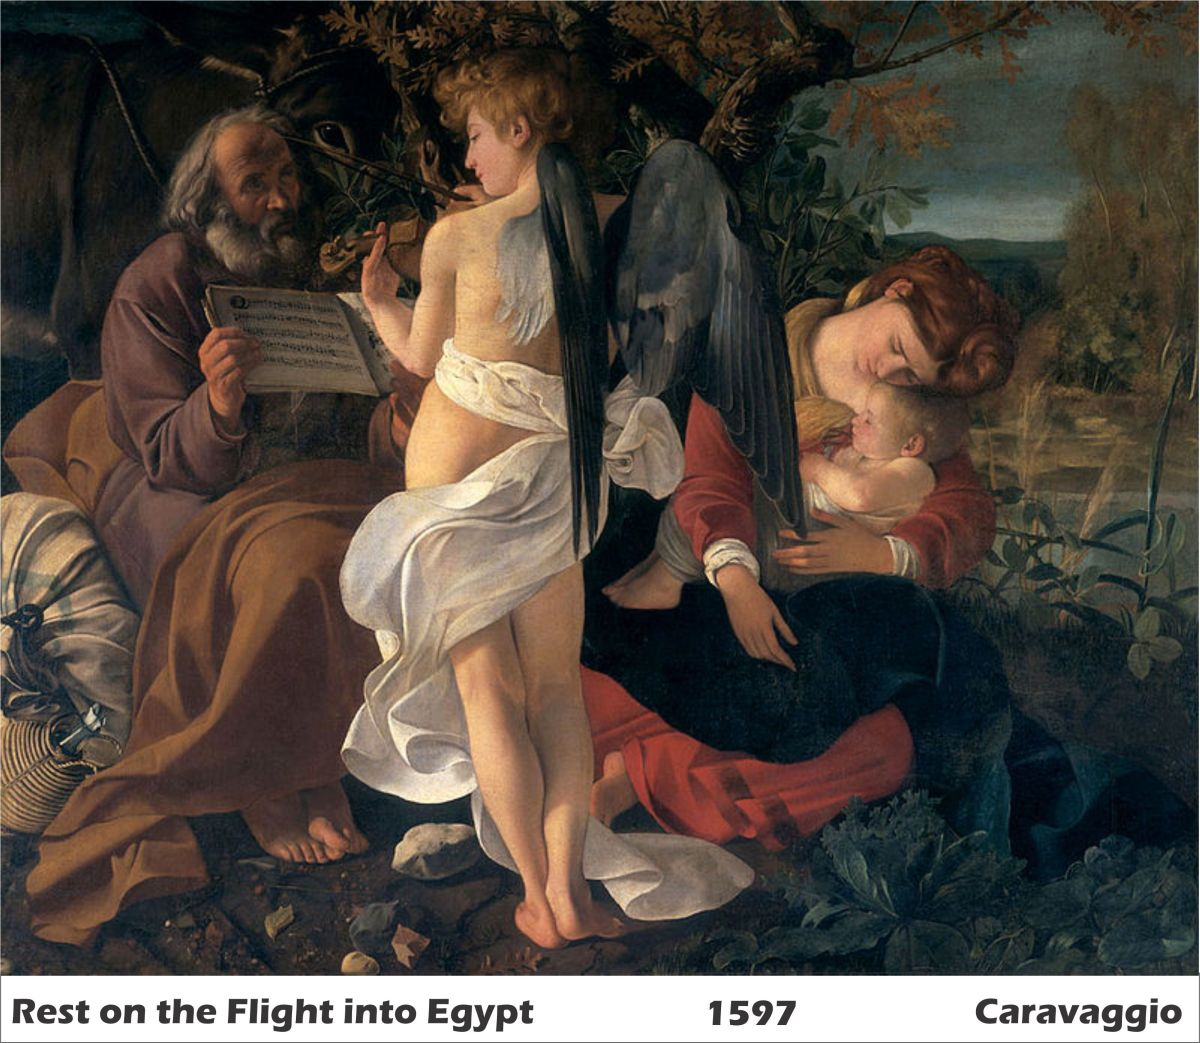 Rest on the Flight into Egypt by Caravaggio